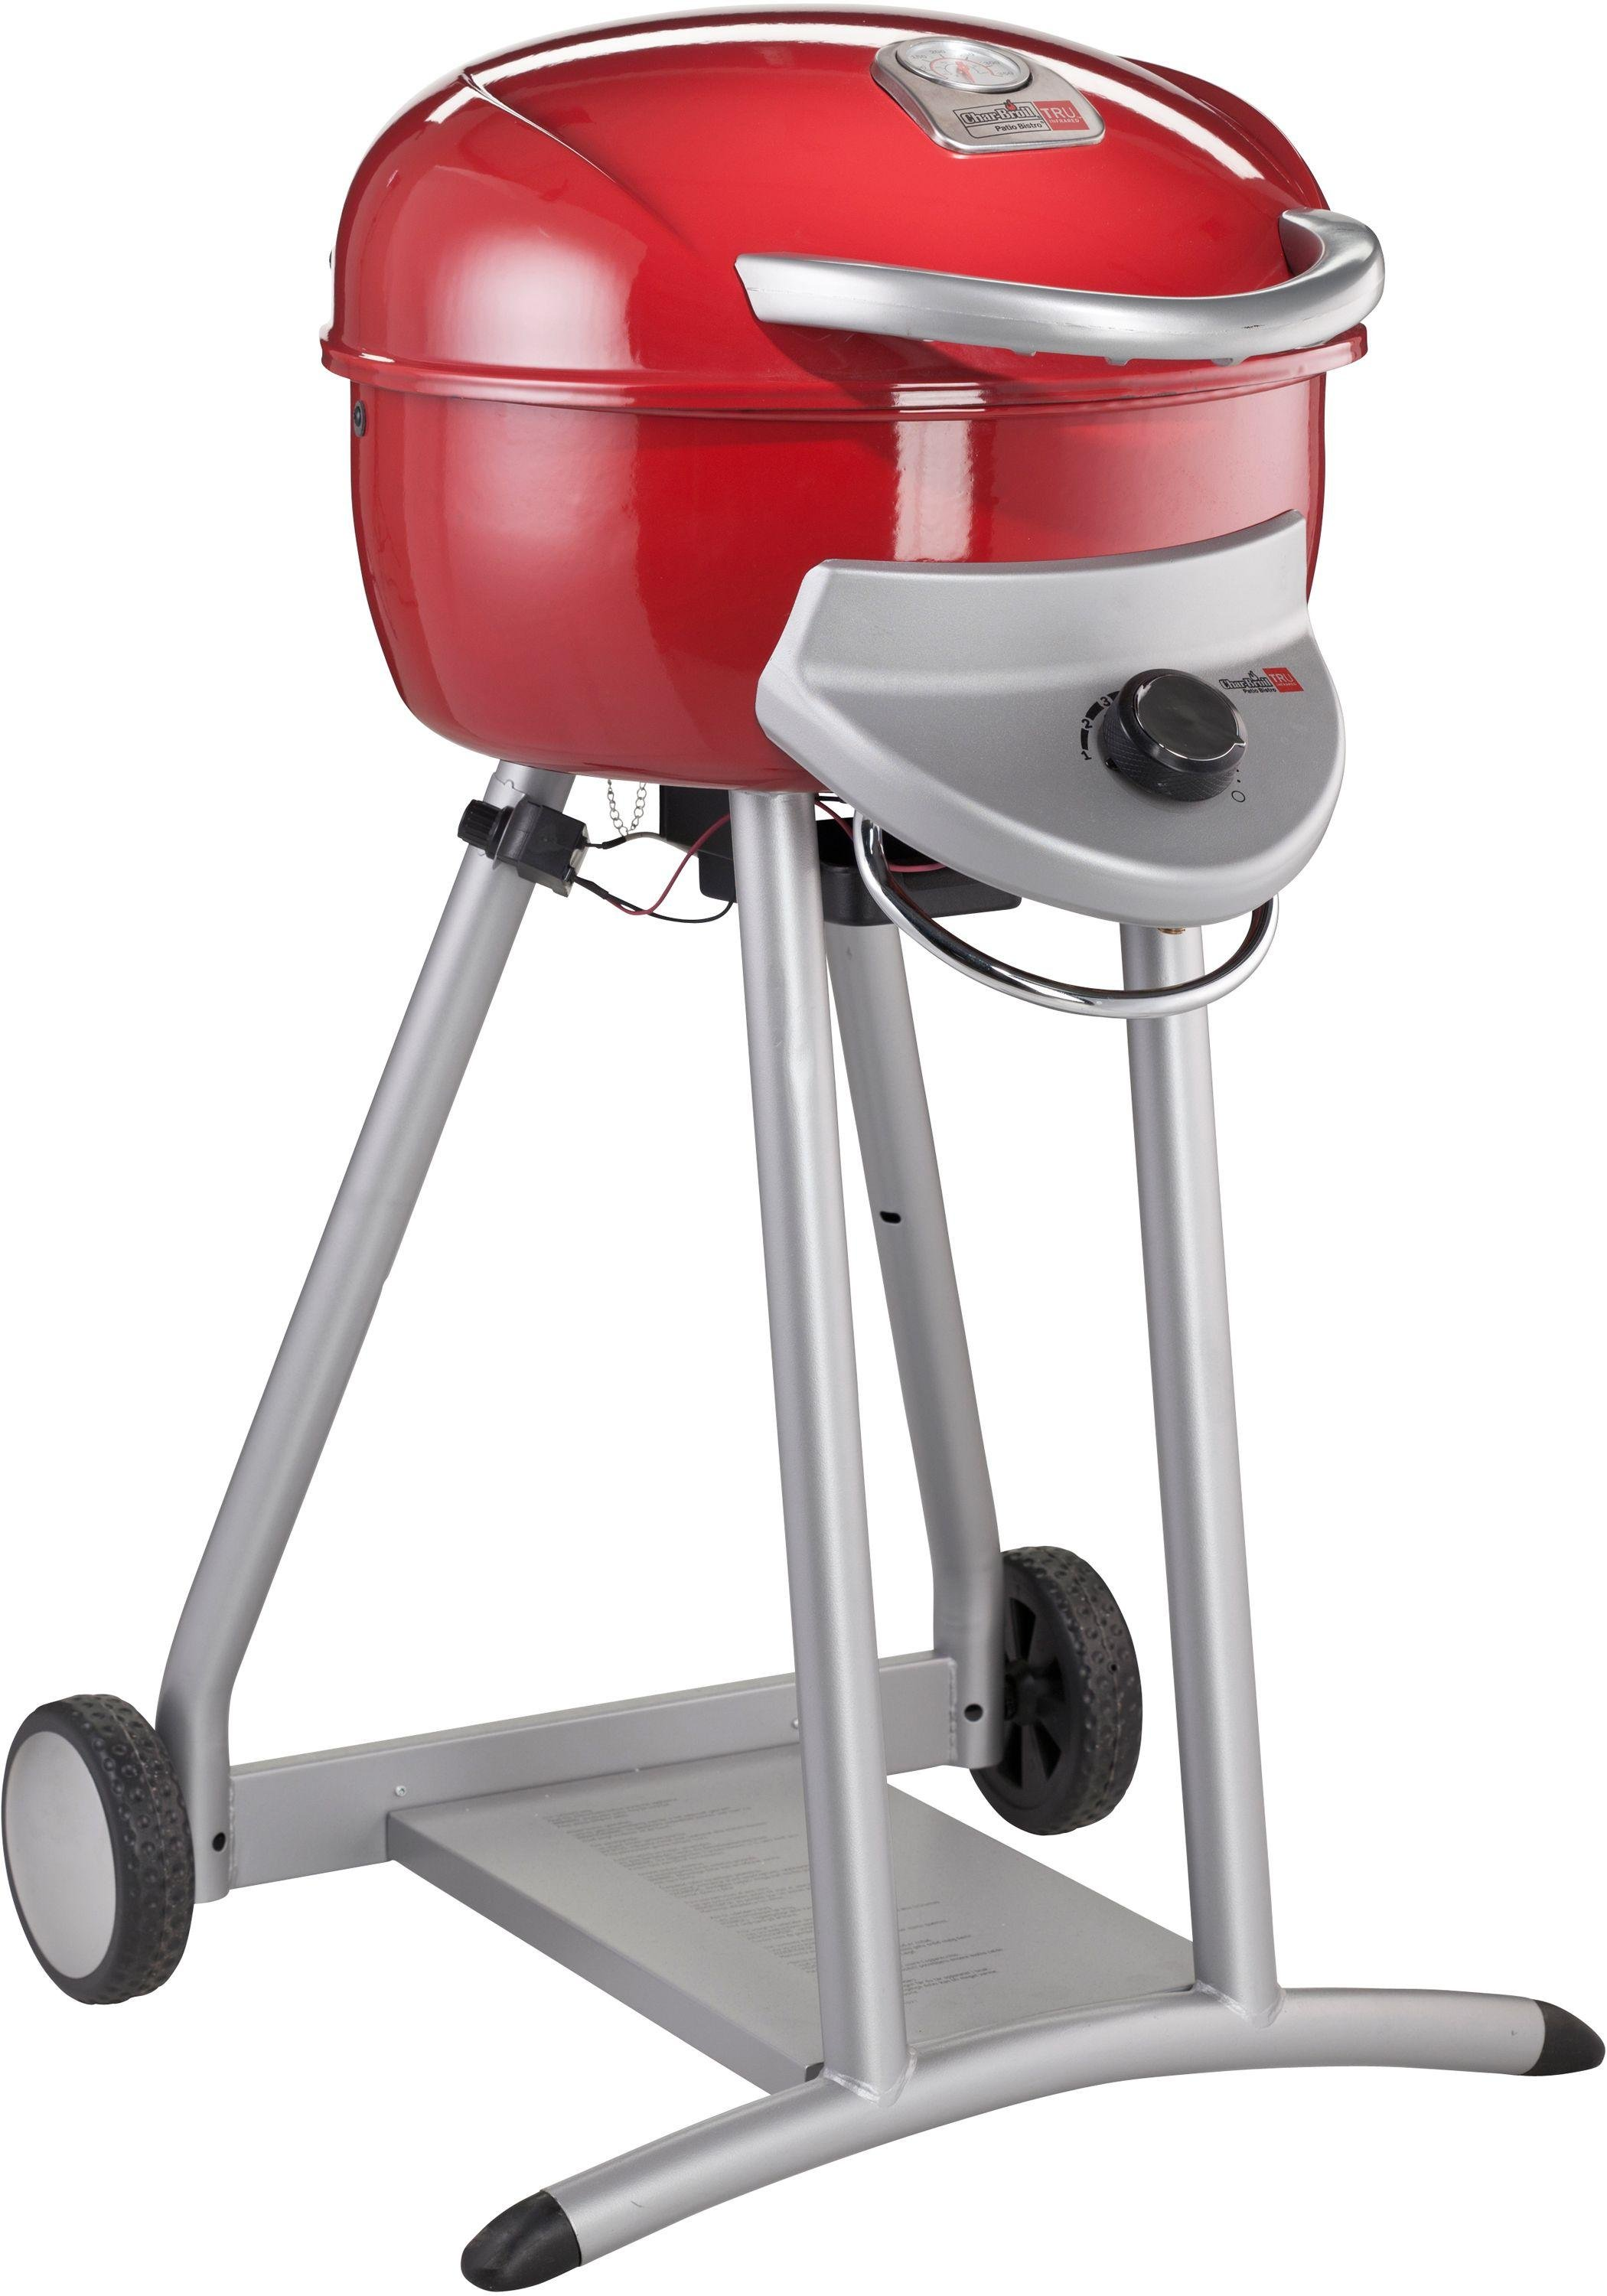 Image of Char-Broil Patio Bistro 240 - Single Burner Gas BBQ - Red